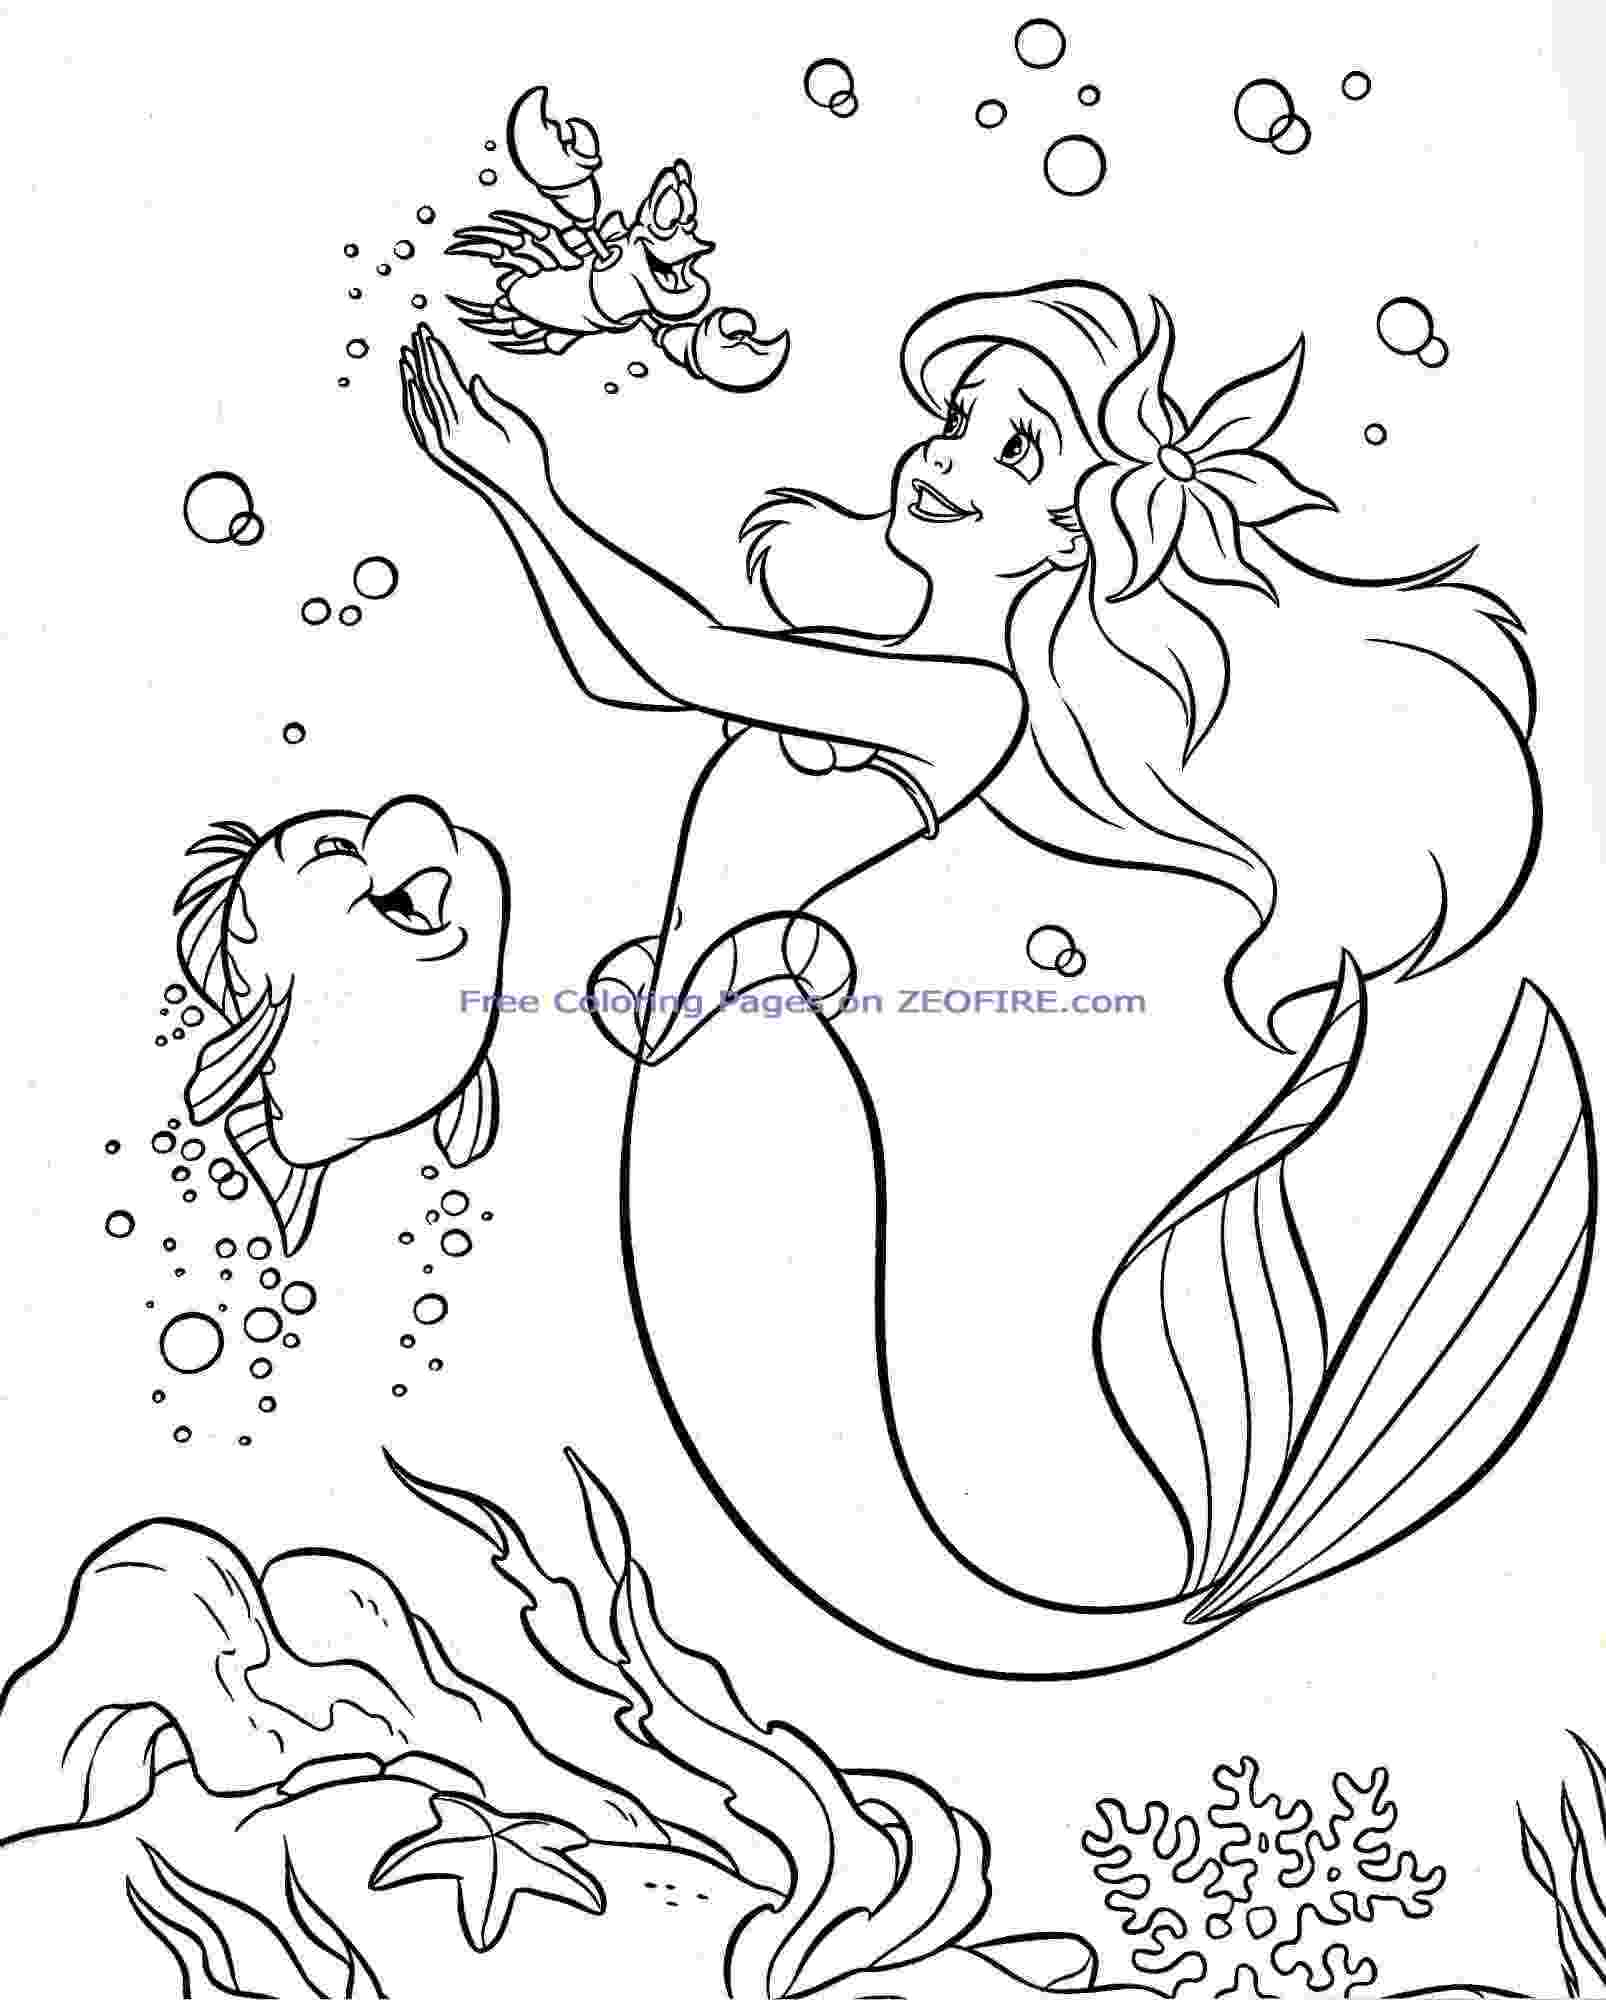 ariel coloring sheets ariel coloring pages to download and print for free coloring ariel sheets